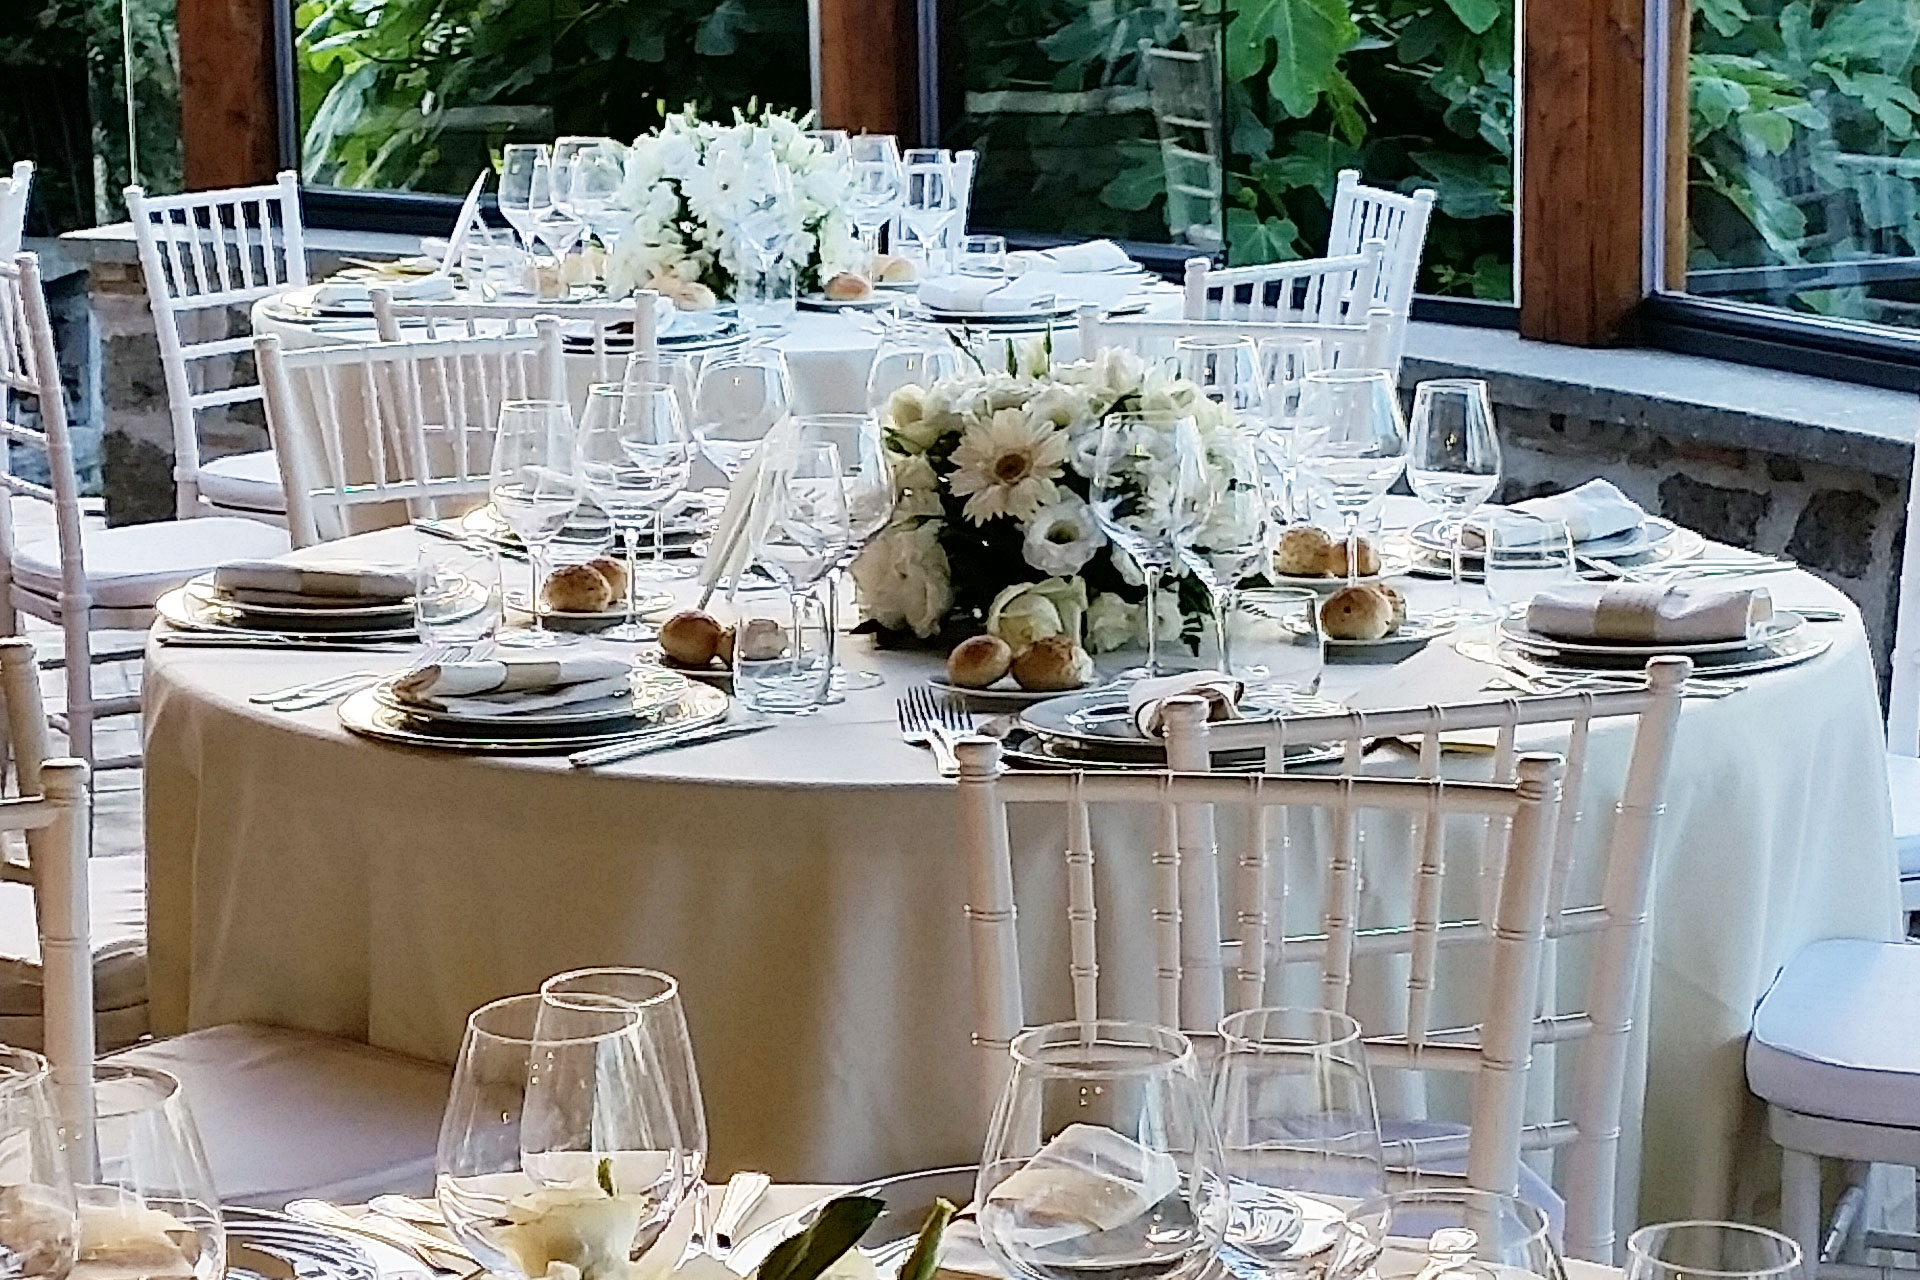 Matrimonio Country Chic Roma : Matrimonio country chic wn regardsdefemmes